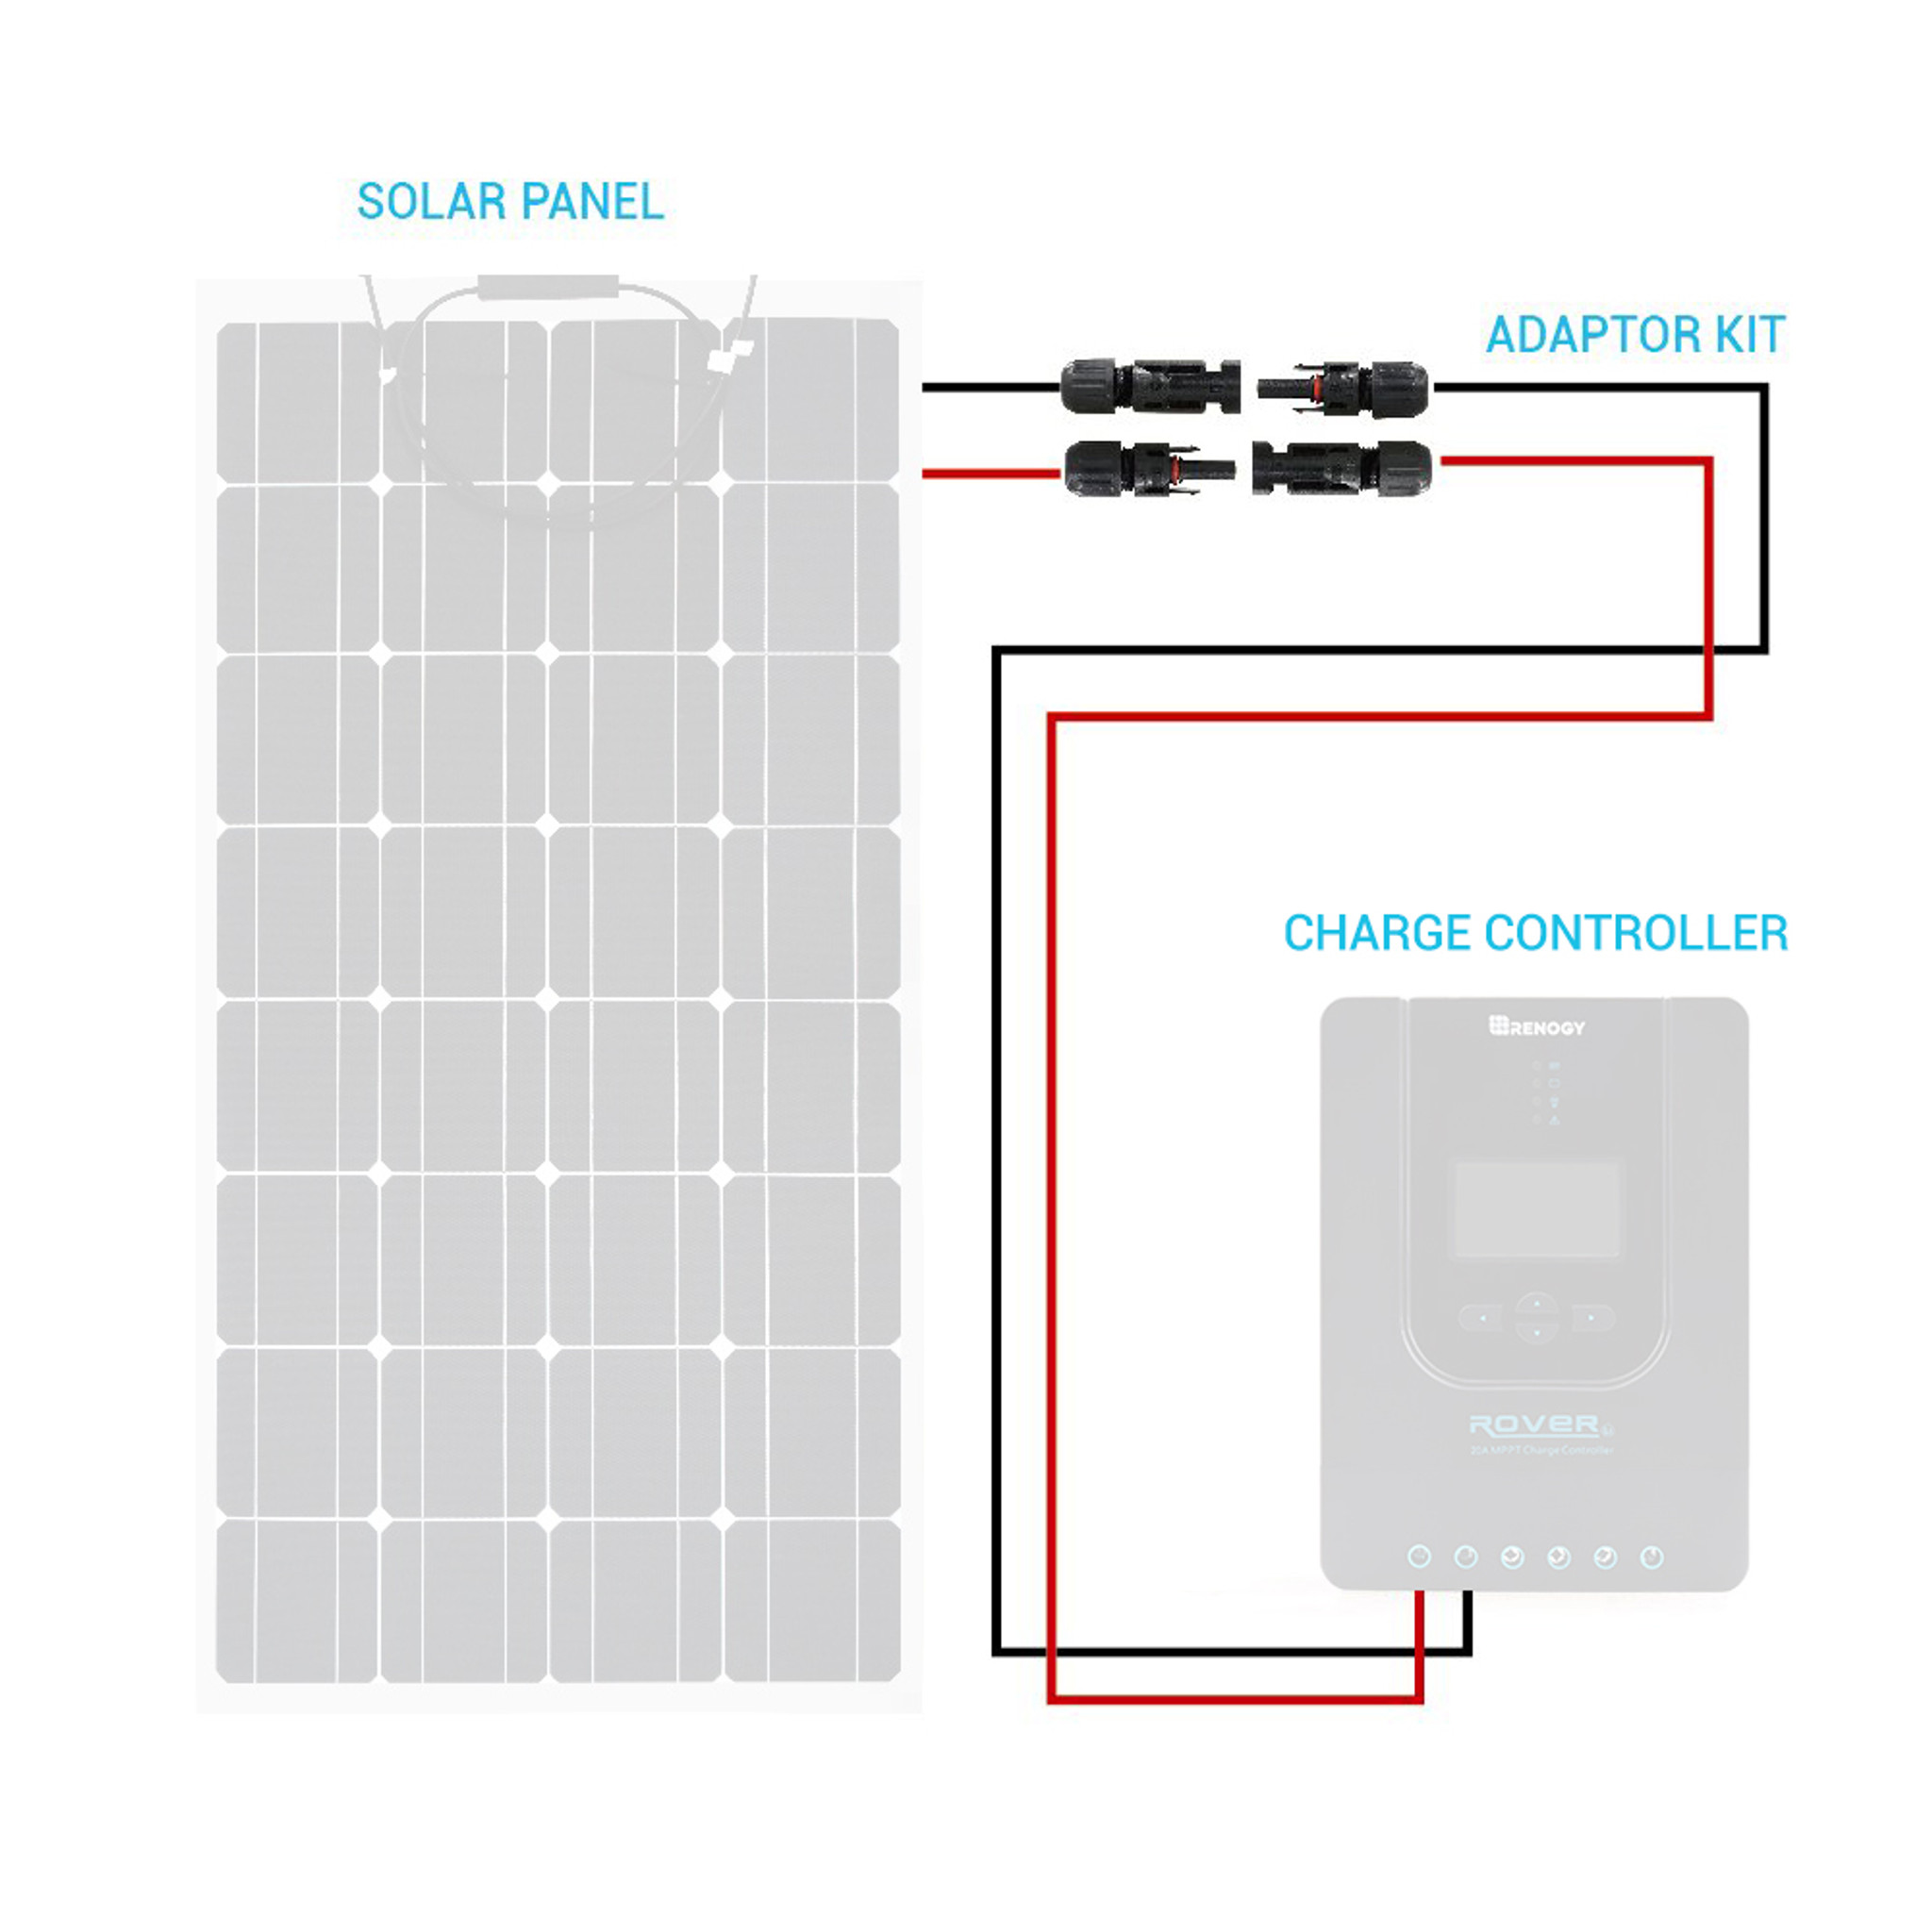 Solar Panel to Charge Controller Adaptor Kit